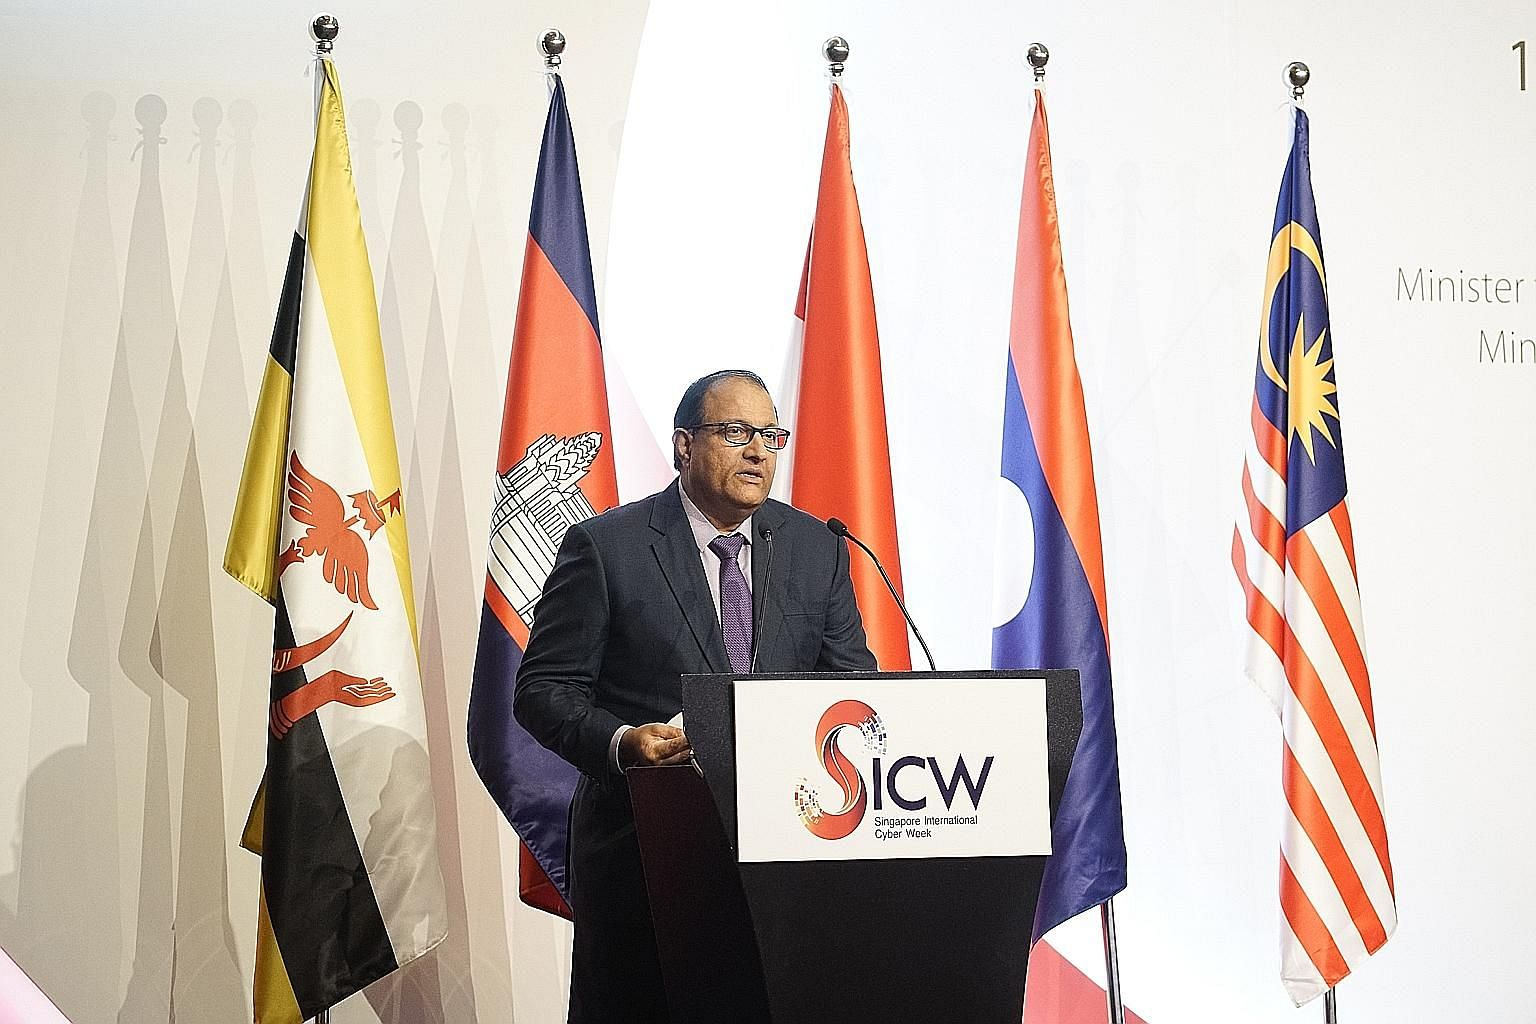 Minister for Communications and Information S. Iswaran said at the Asean Ministerial Conference on Cybersecurity that the 10 Asean members have agreed on a rules-based approach to cyber security.